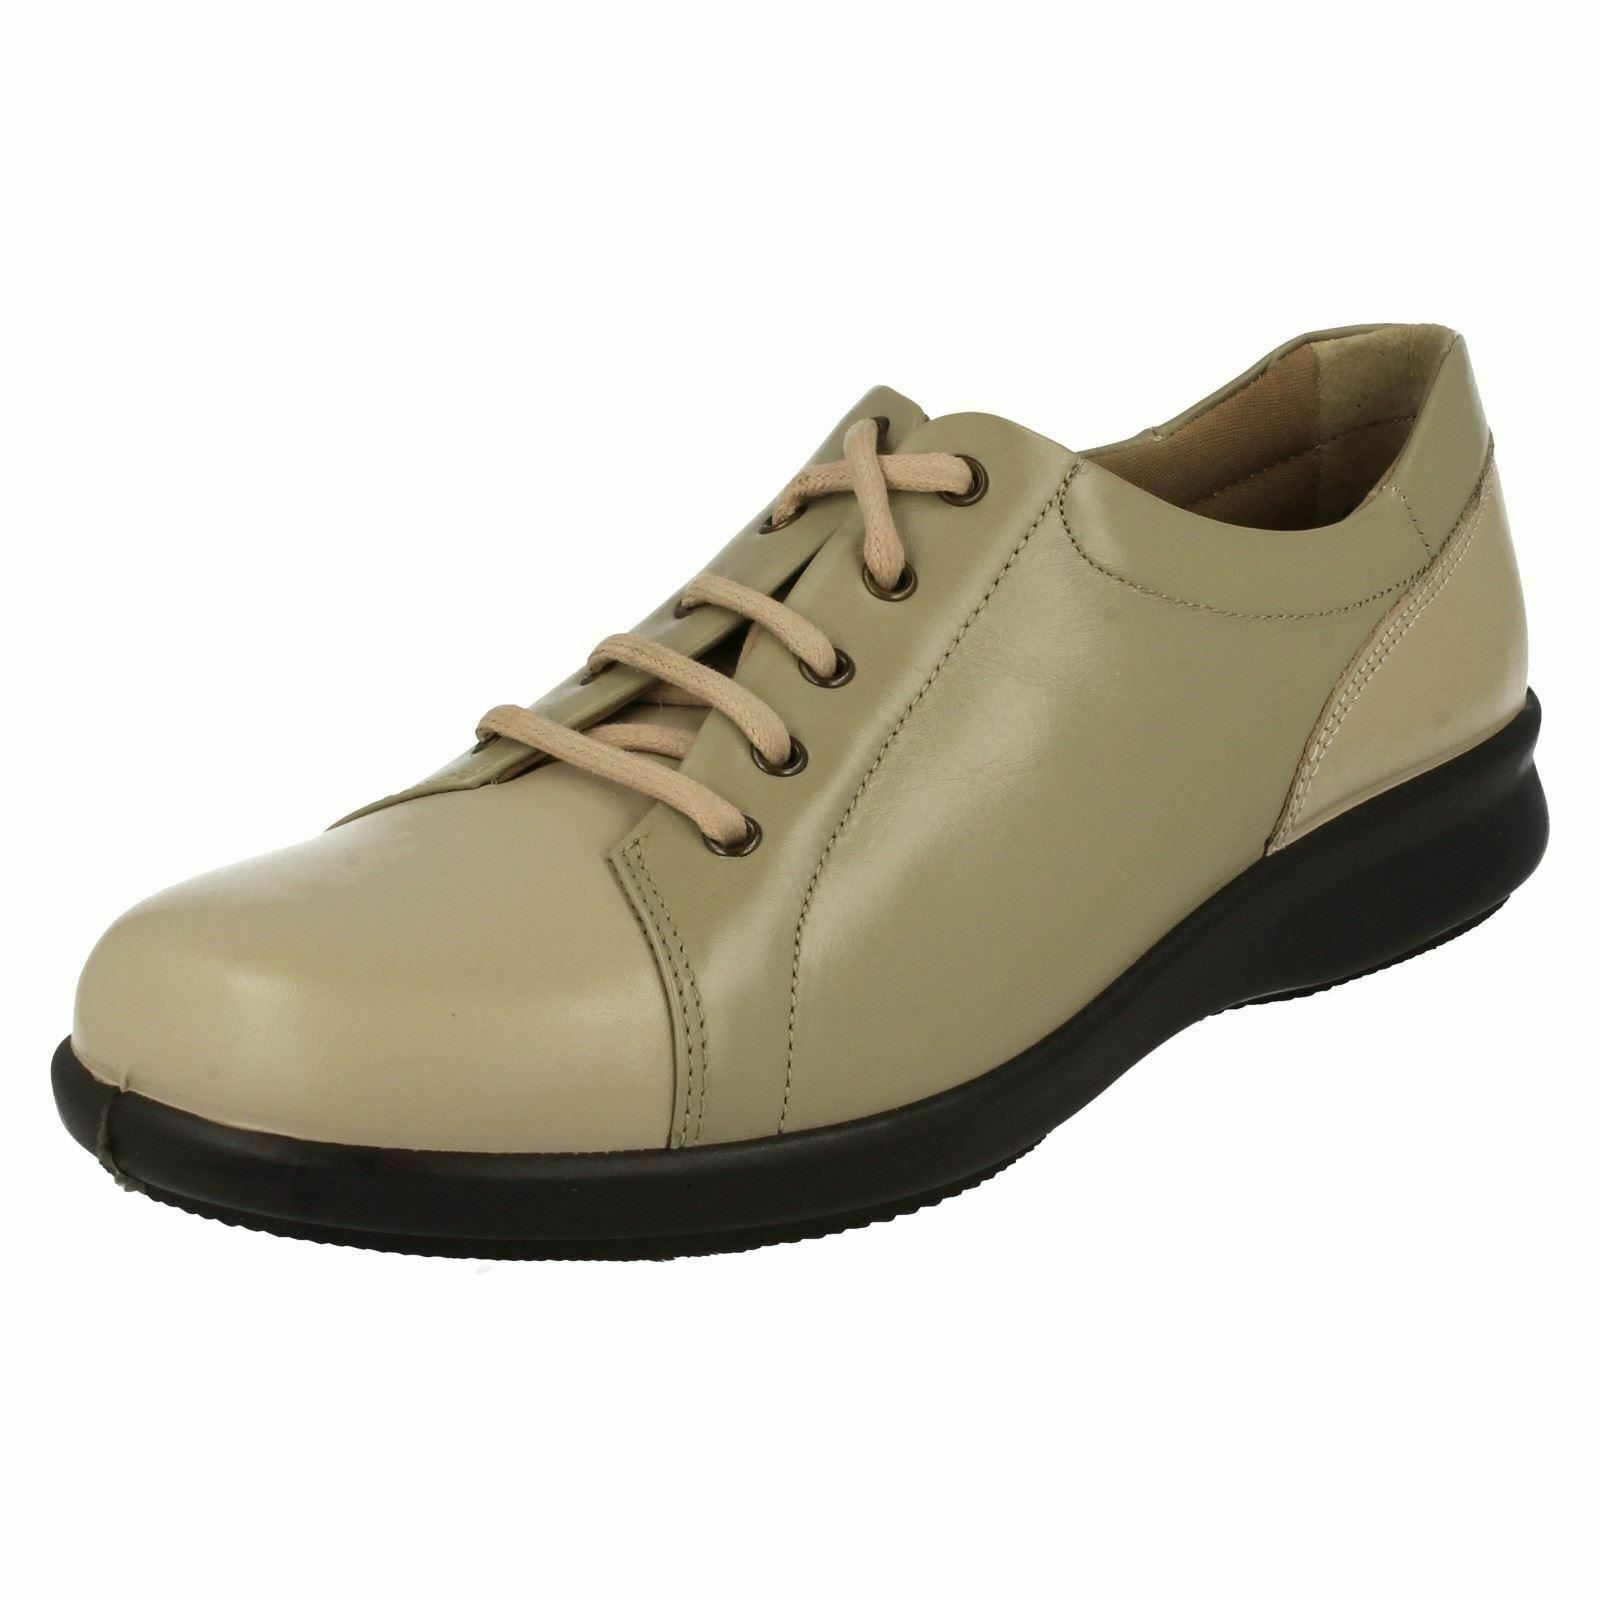 2eab34f7a0b73 Ladies Easy B Casual Lace up Shoes Phoebe UK 8 Beige taupe EE